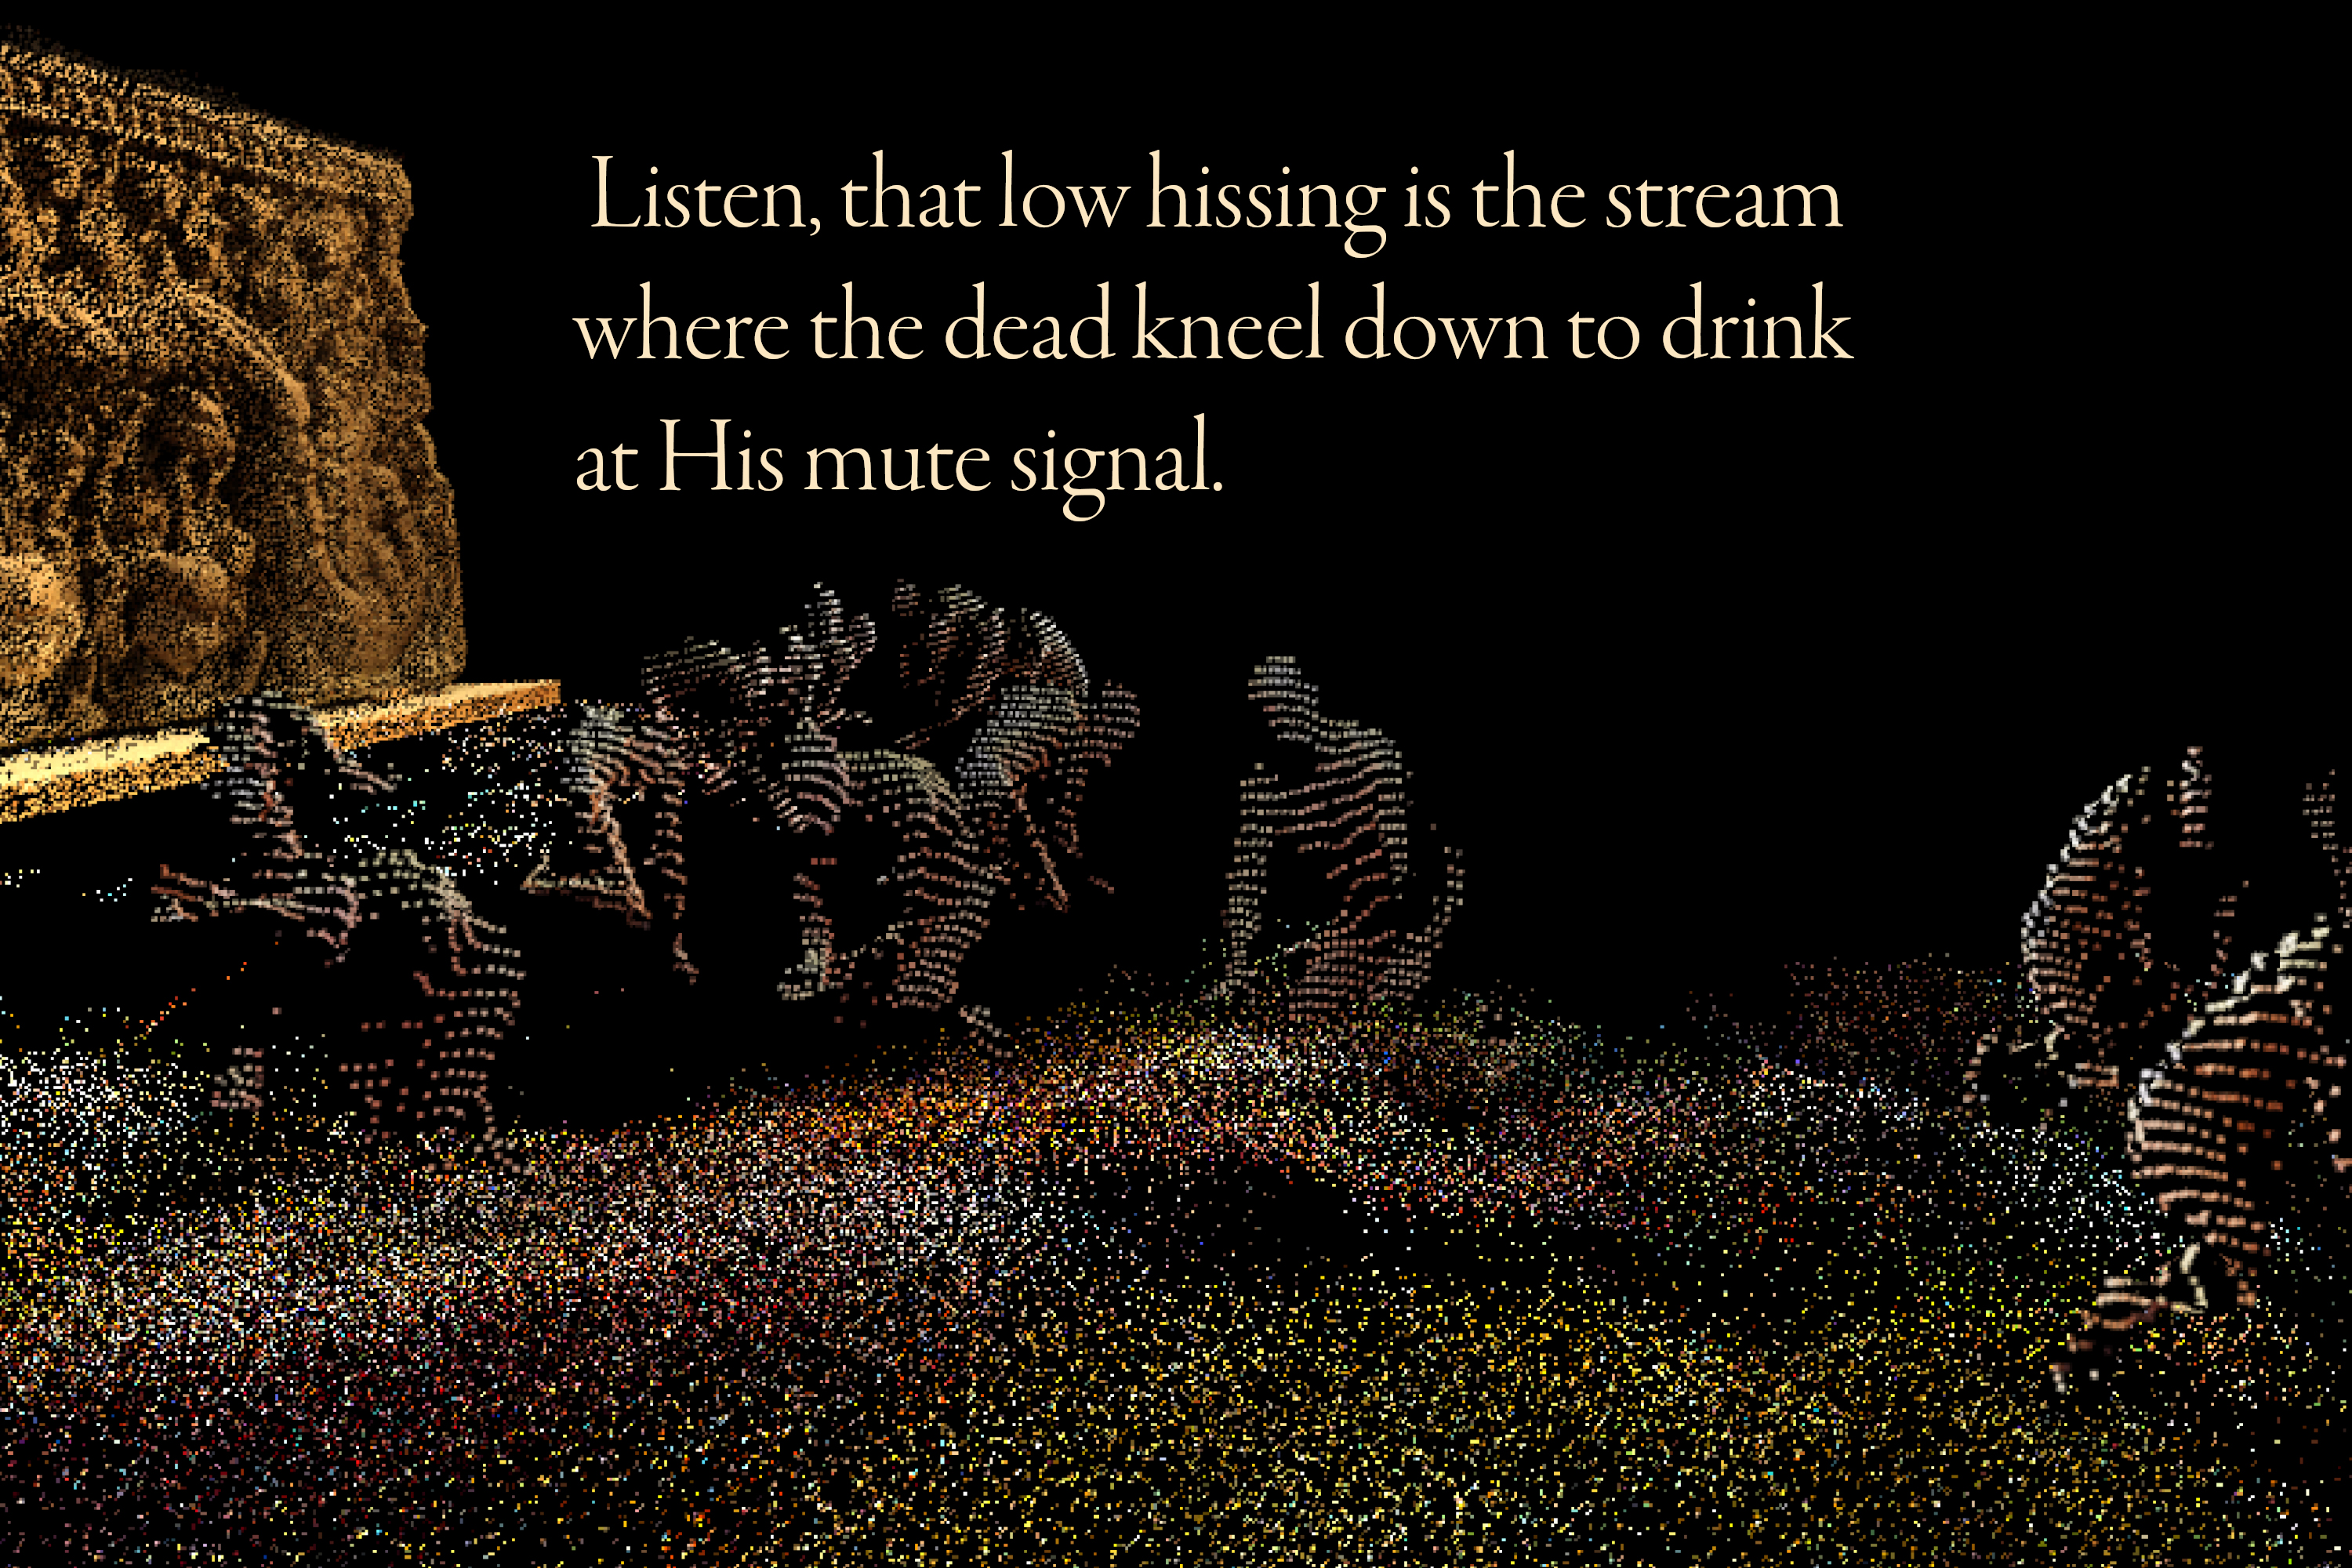 Listen, that low hissing is the stream where the dead kneel down to drink at his mute signal.